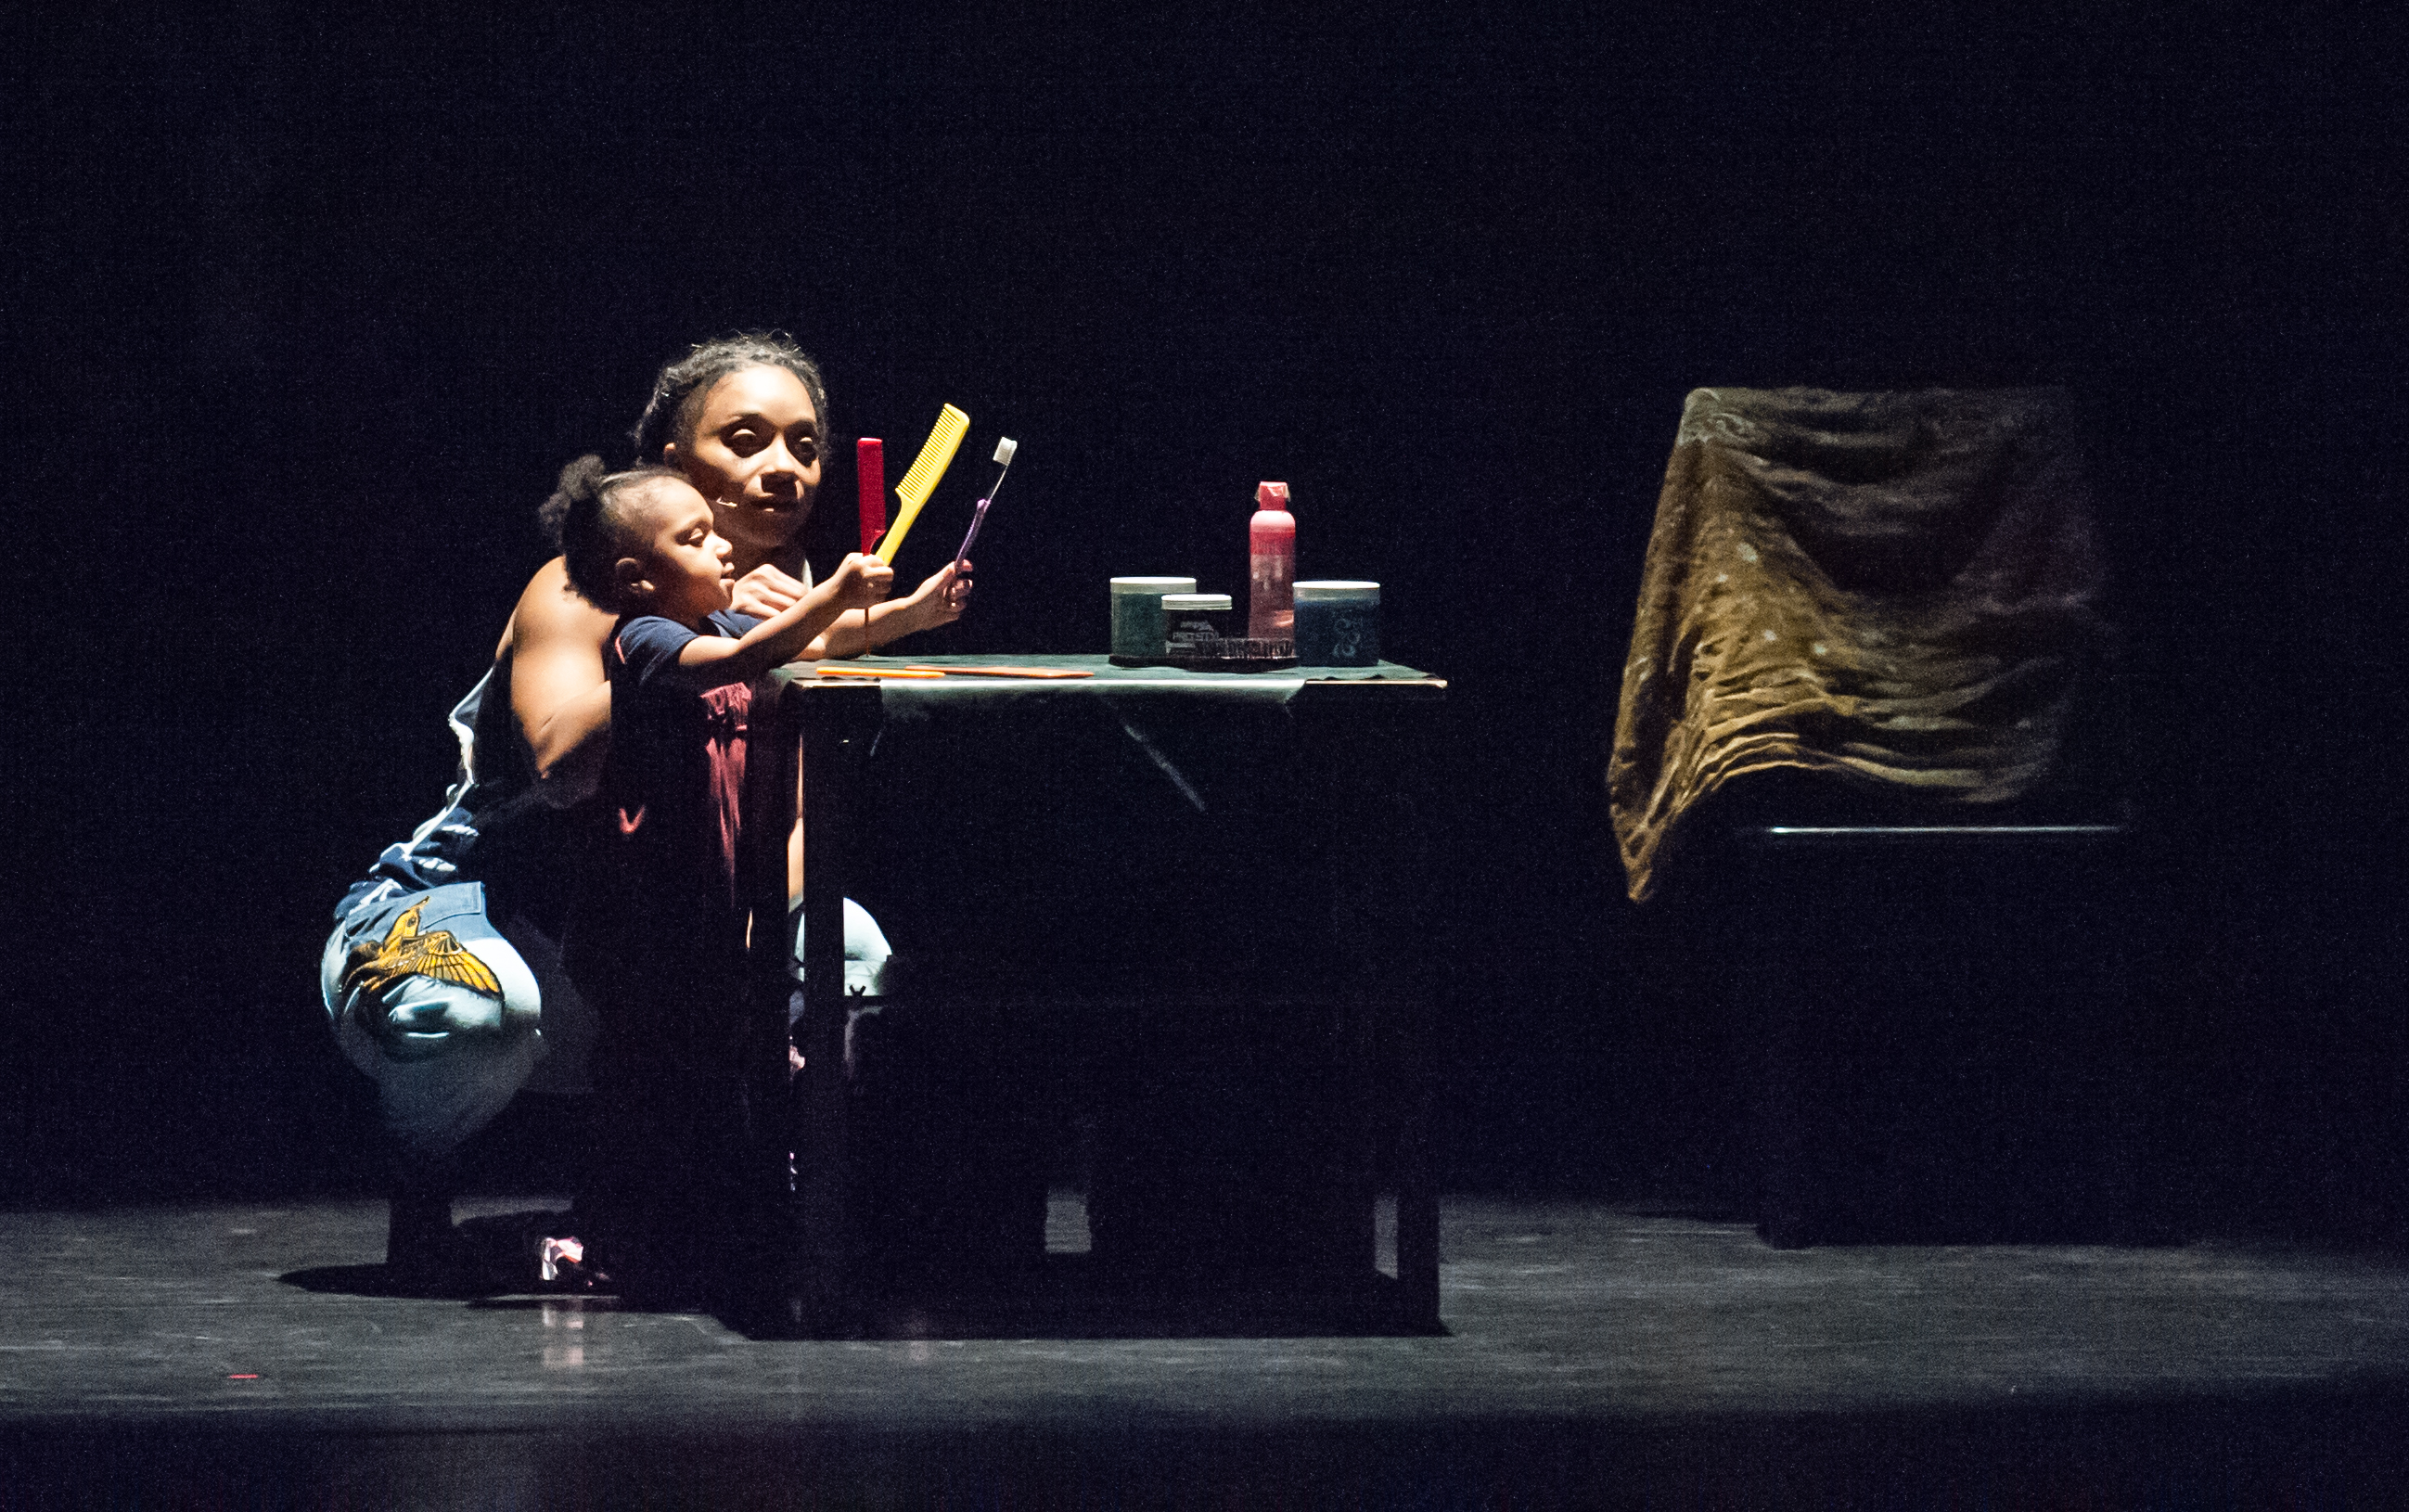 An adult and child performer in a scene from Urban Bush Women's Hair and Other Stories.